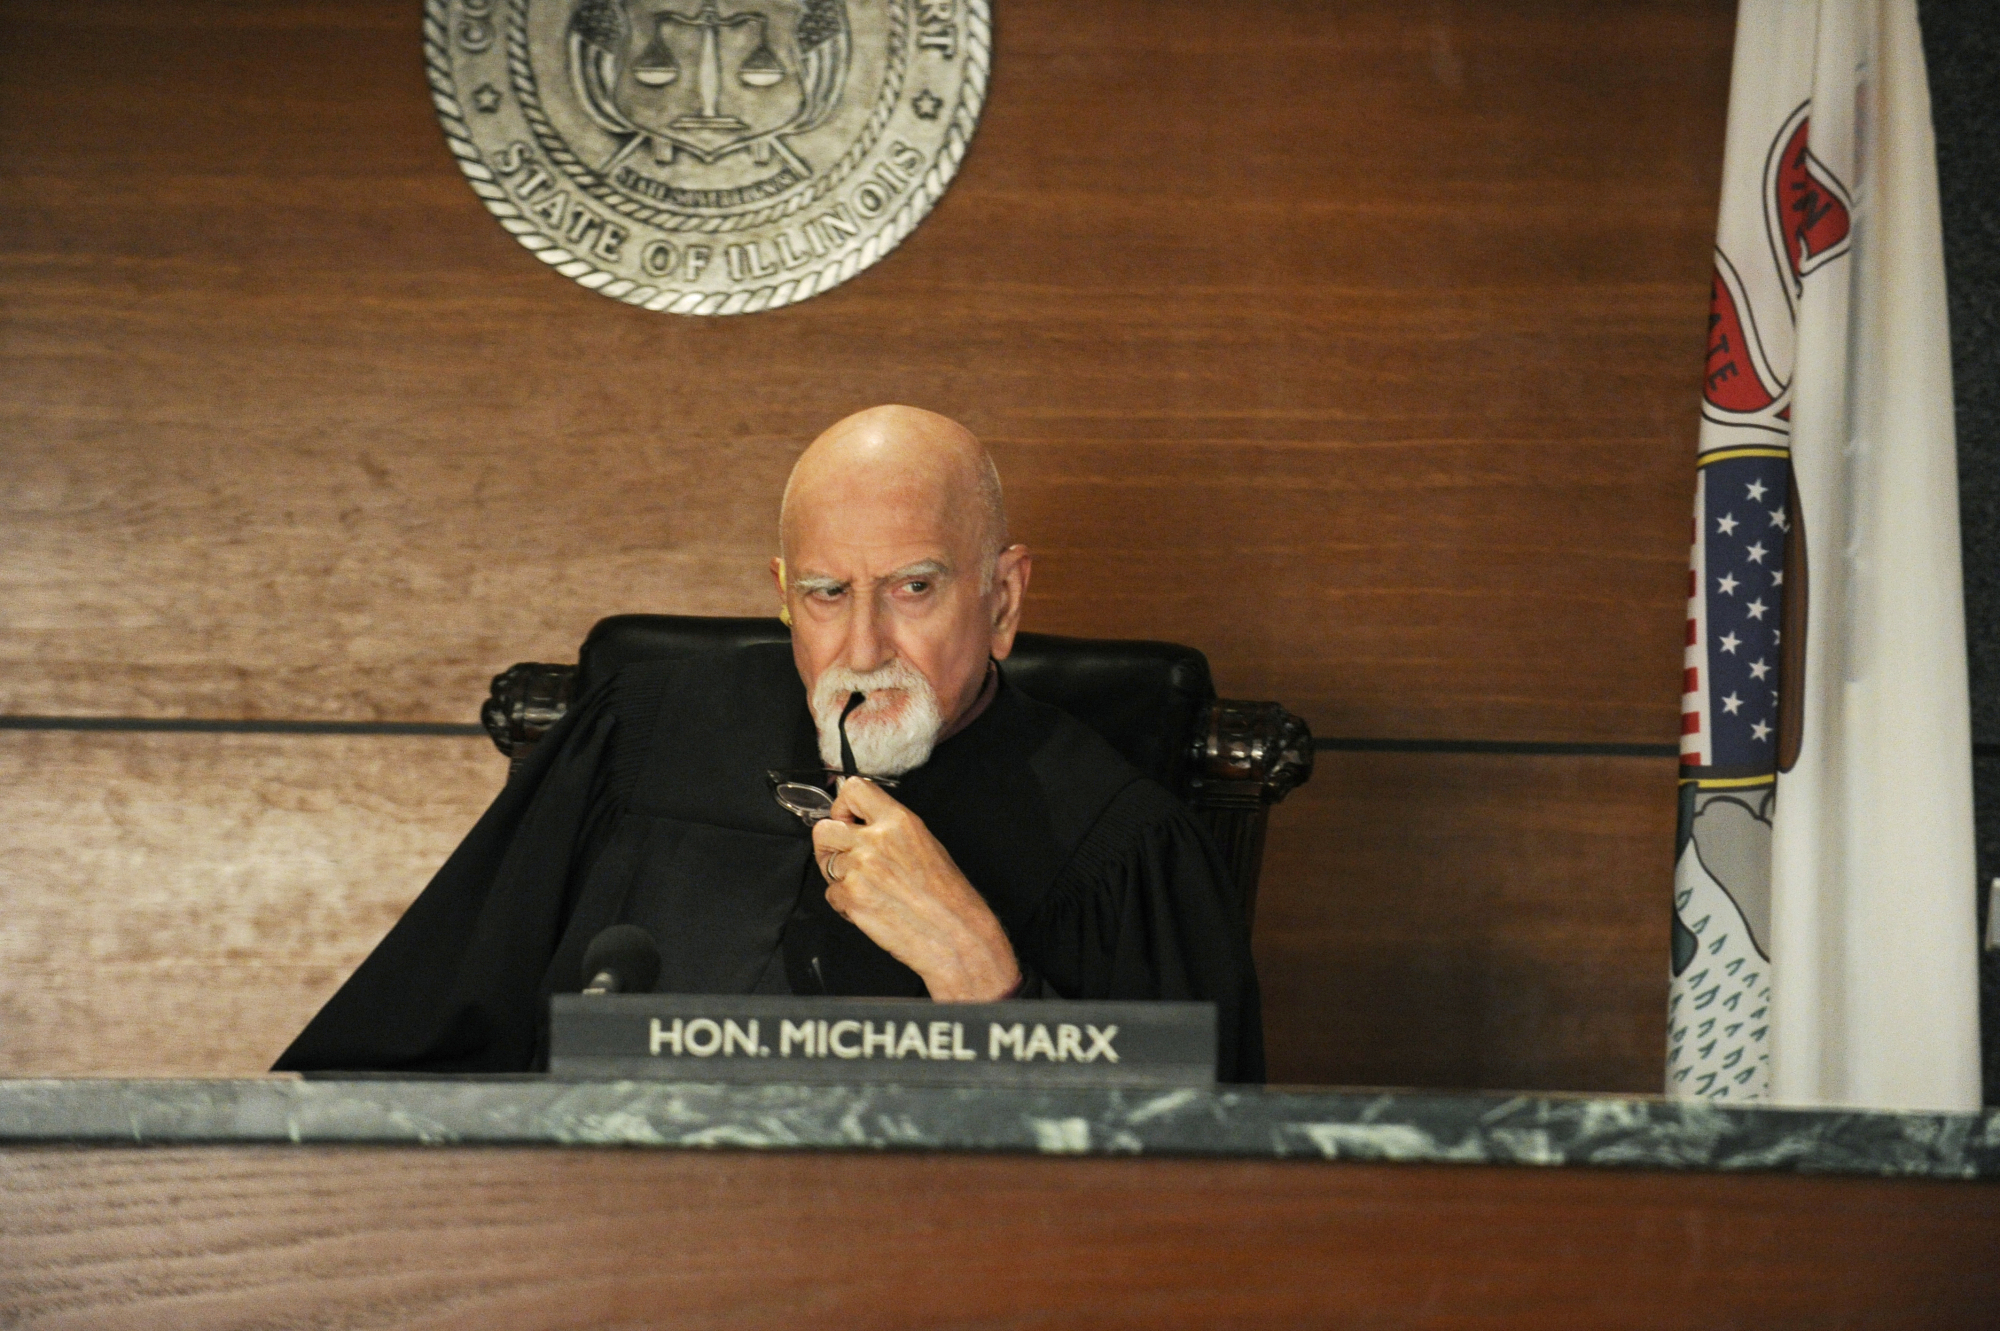 Judge Michael